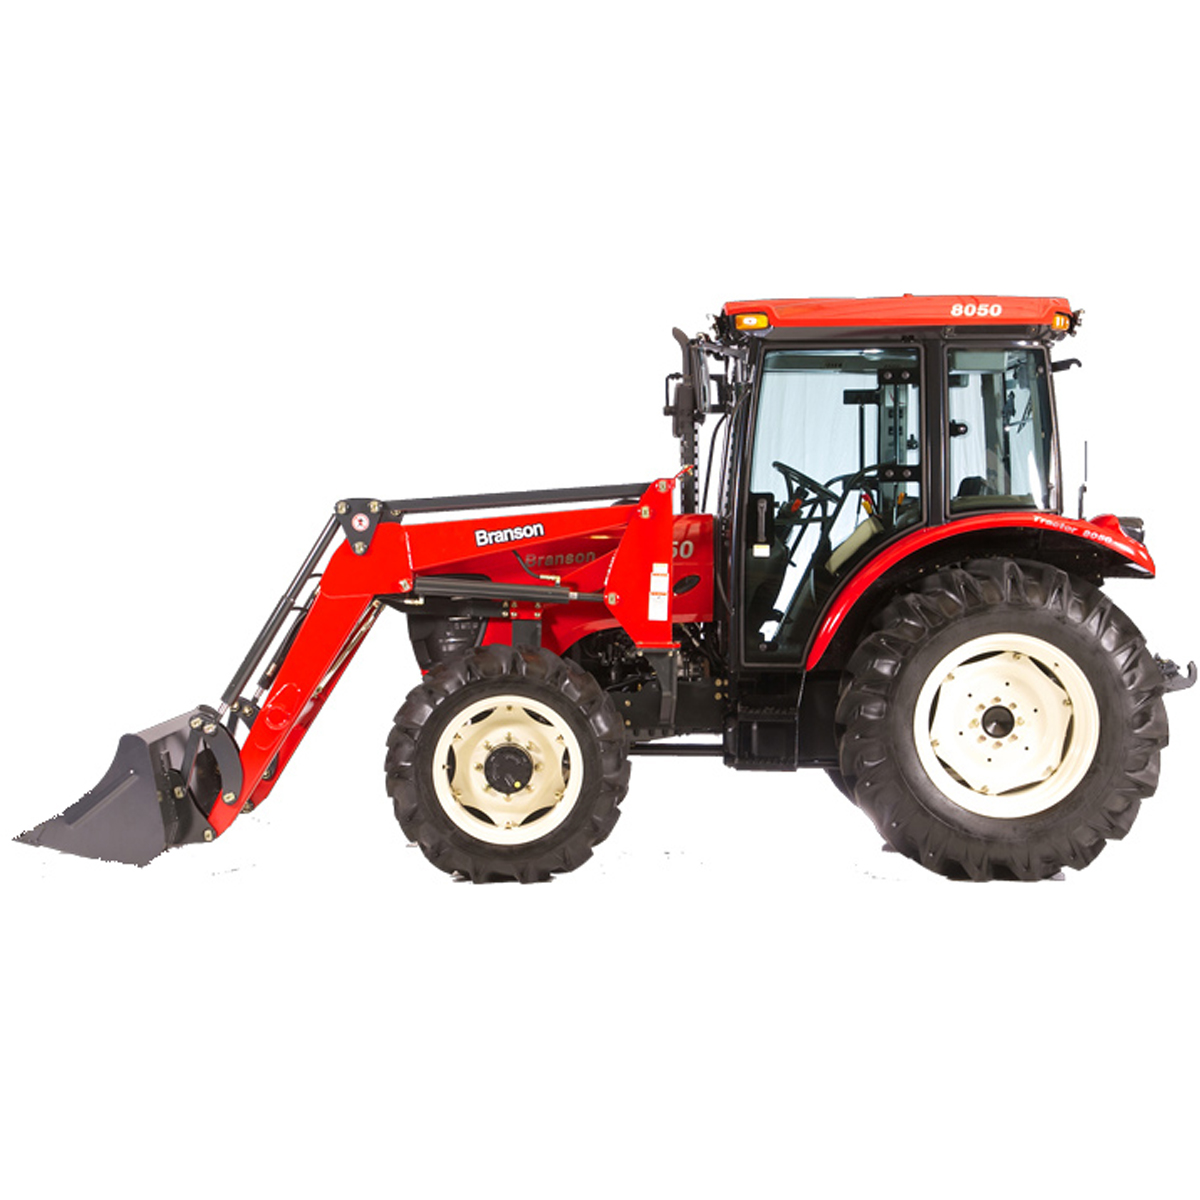 branson 8050 introducing the branson tractor 8050 featuring a powerful ...